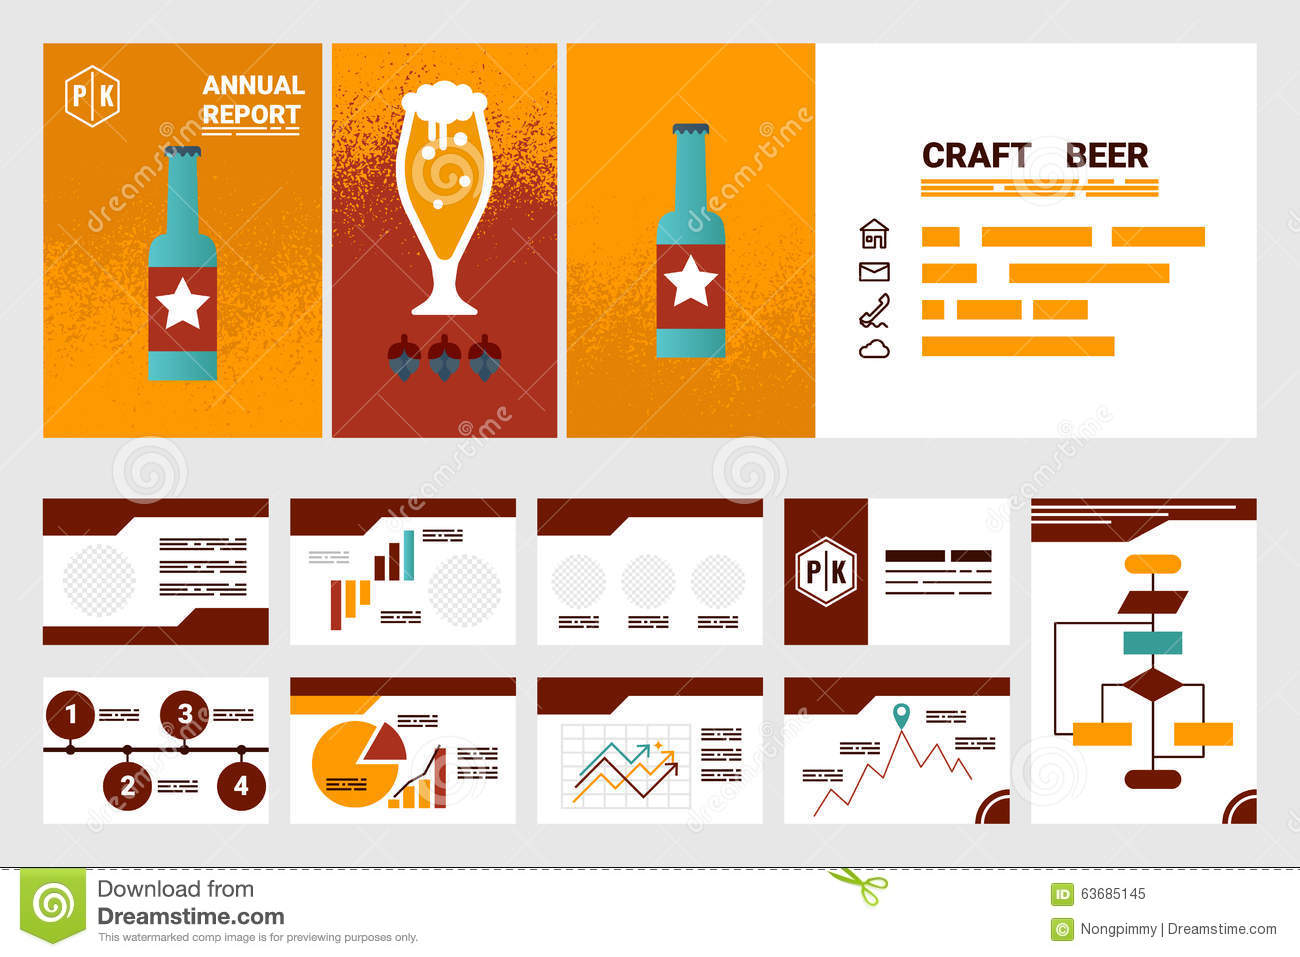 craft beer book cover and presentation template stock vector craft beer company annual report cover a4 sheet and presentation royalty stock photo